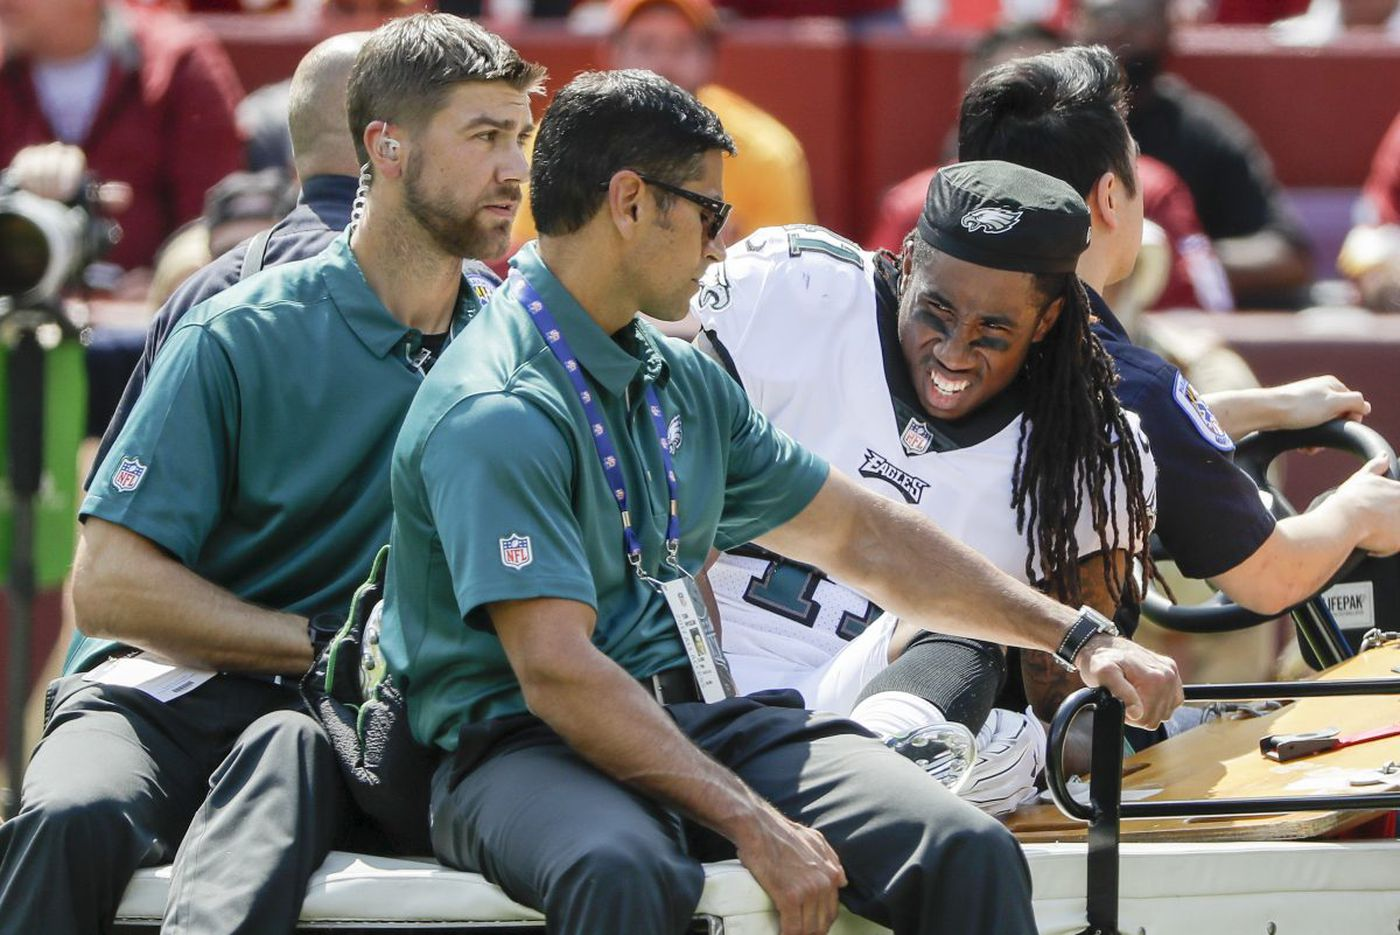 Eagles get good news on Ronald Darby